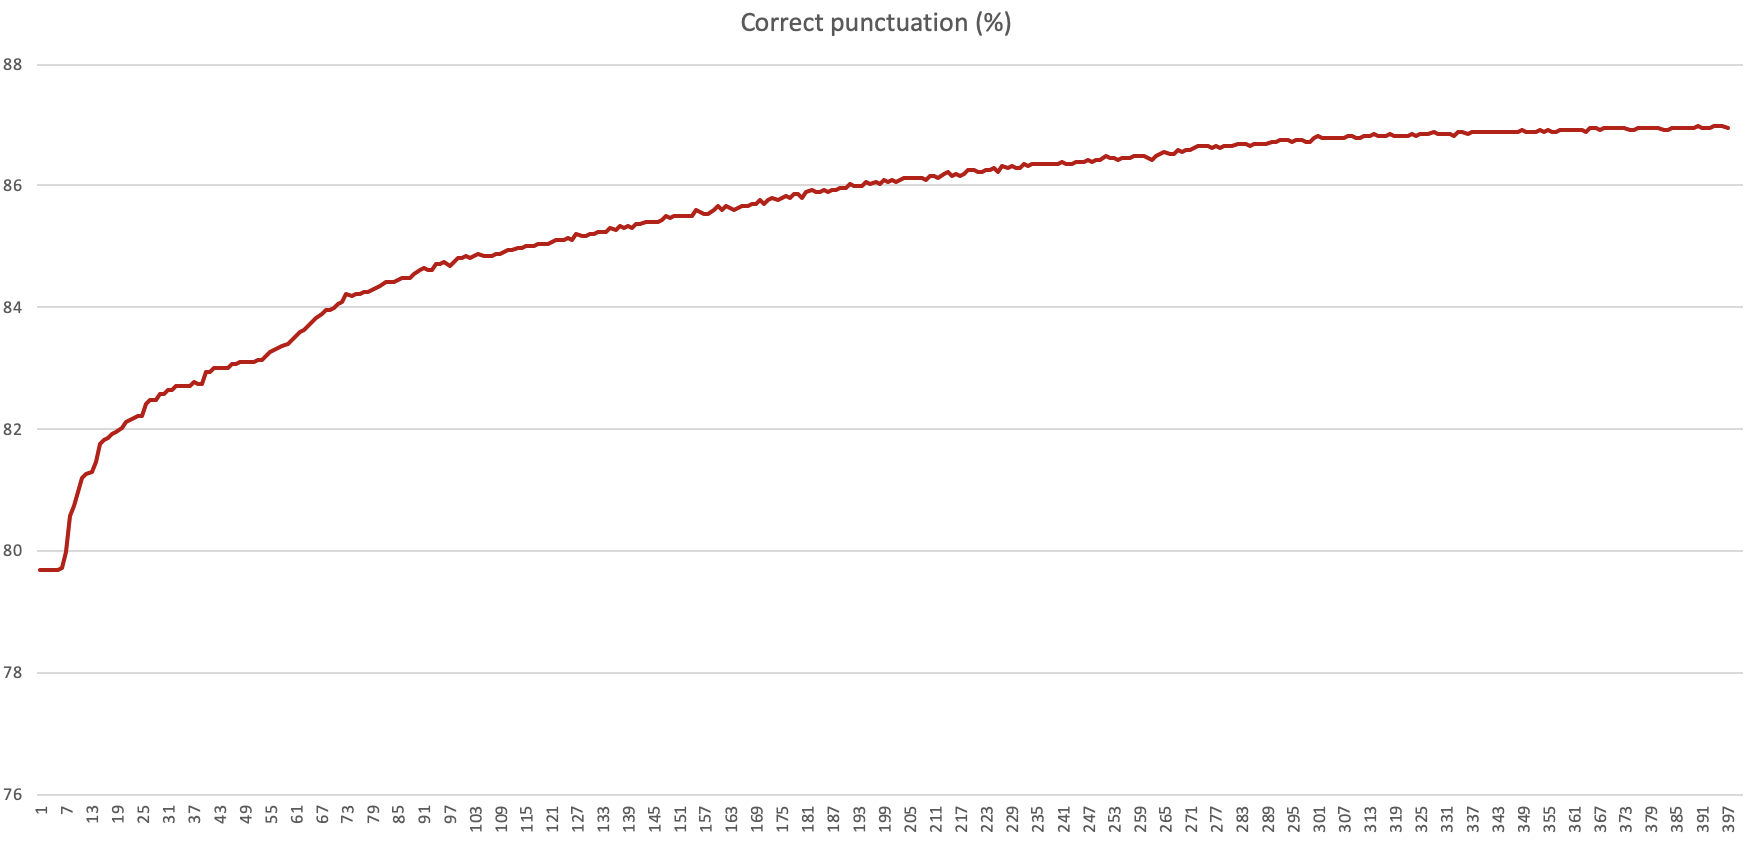 The percentage of correct prediction as training processed 400k sentences